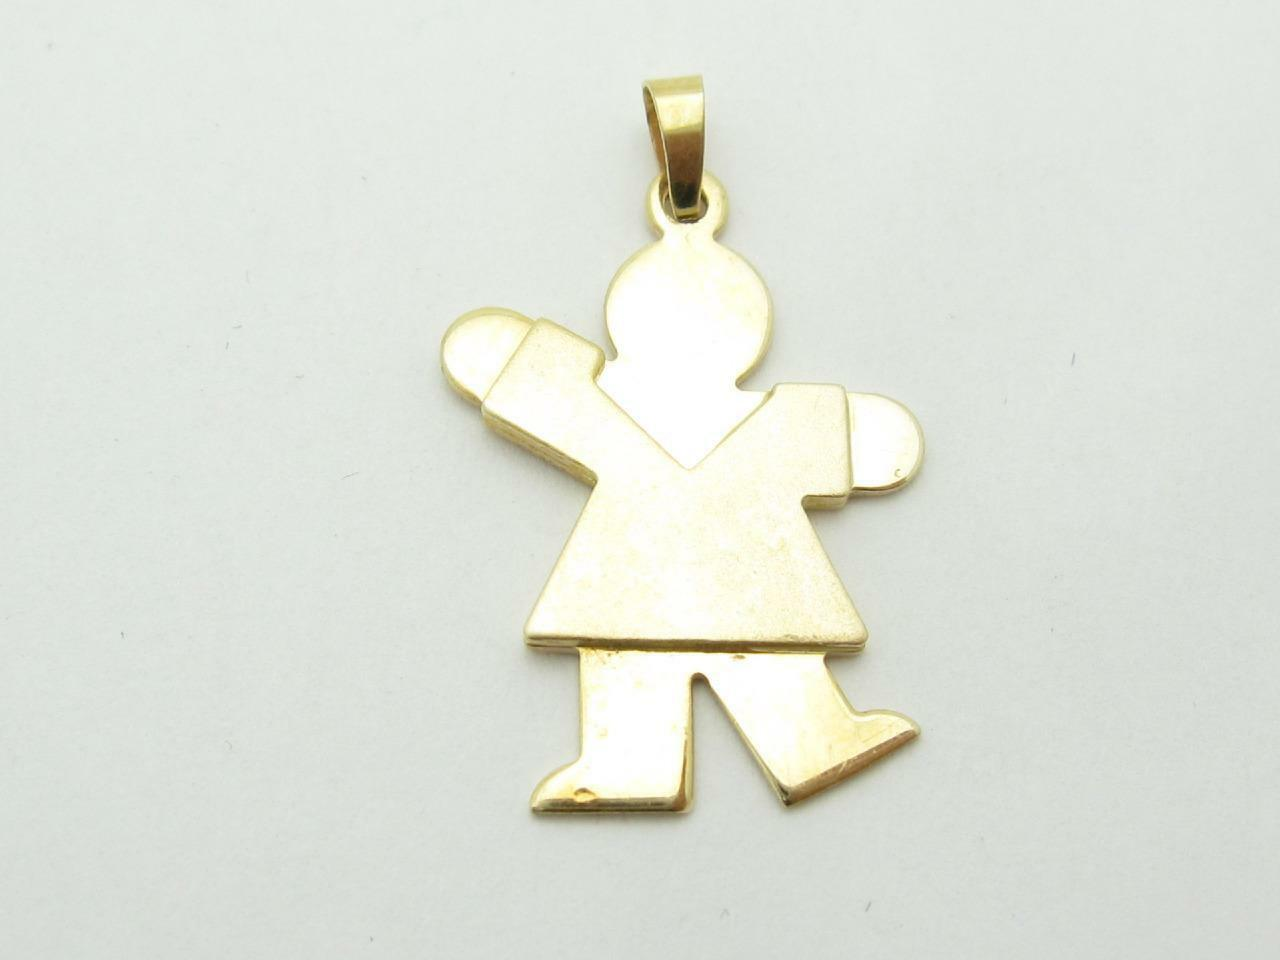 14kt Solid Yellow gold Unique Girl Charm Pendant With Dress Brushed Finish Gift